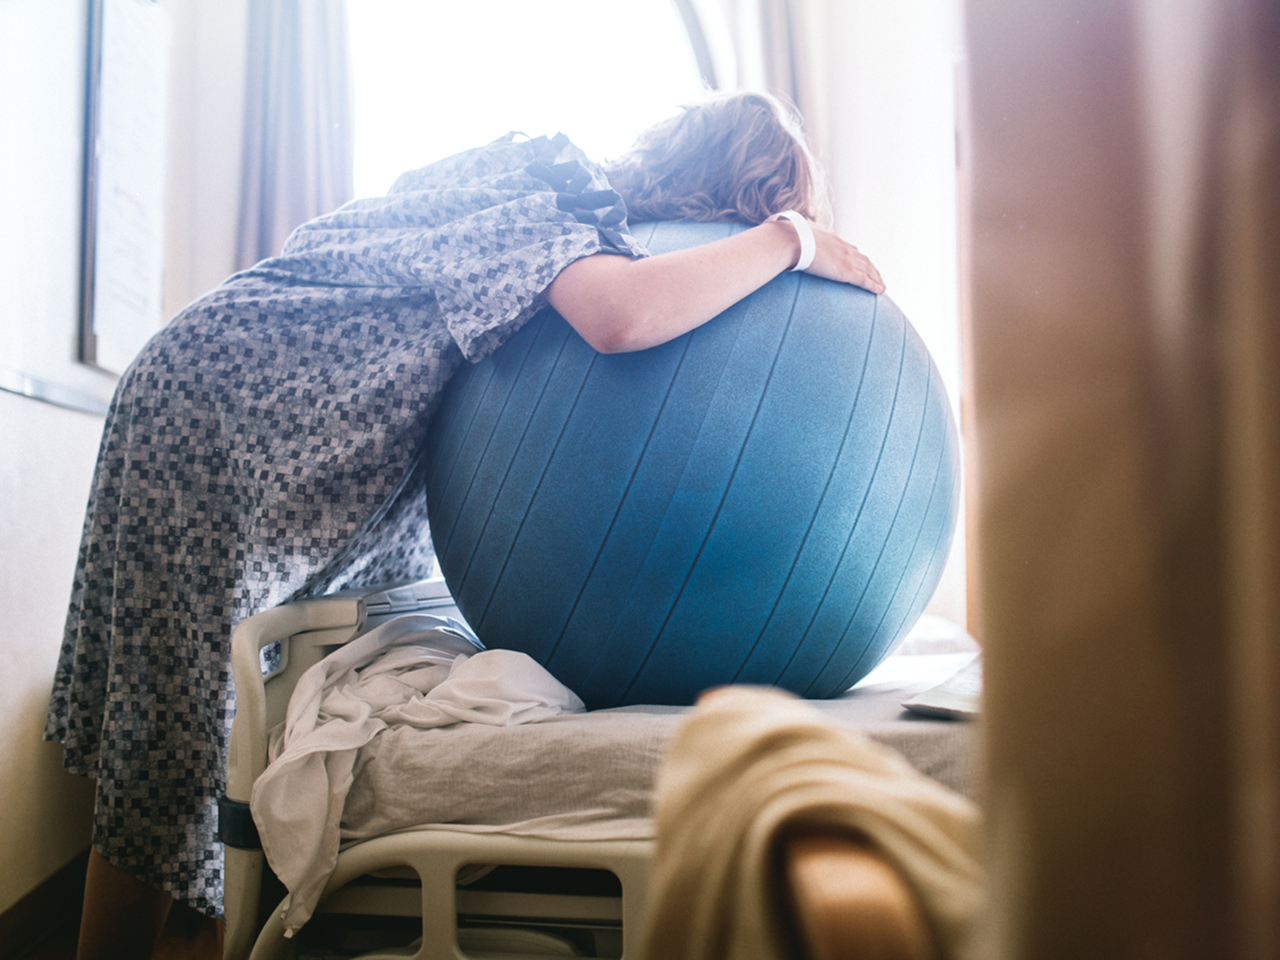 A woman in lobourwith contractions prepares to give birth in a clean white hospital setting. She leans on a birthing or fitness ball to ease the intensity of her contractions.